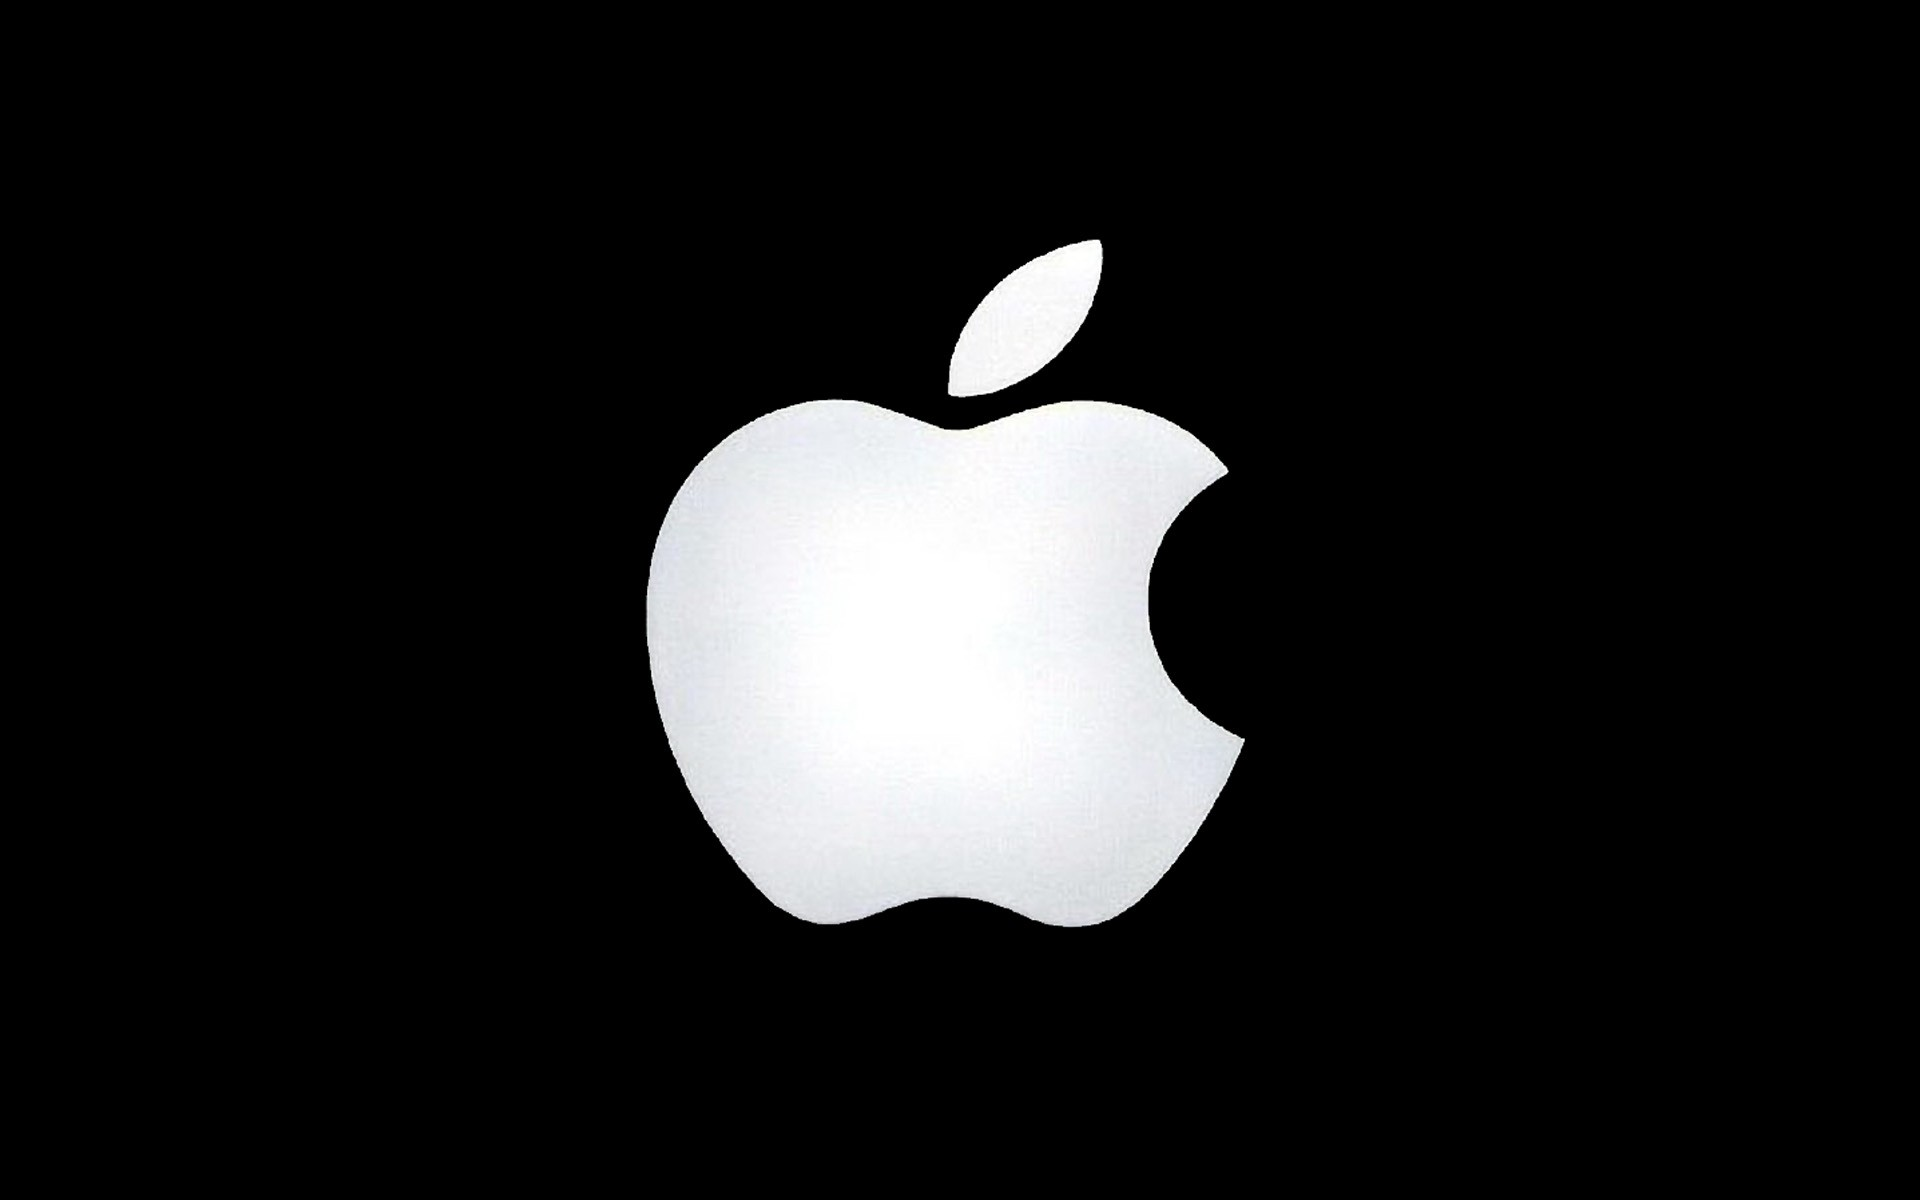 Apple Black and White Wallpaper Downloads 1920x1200